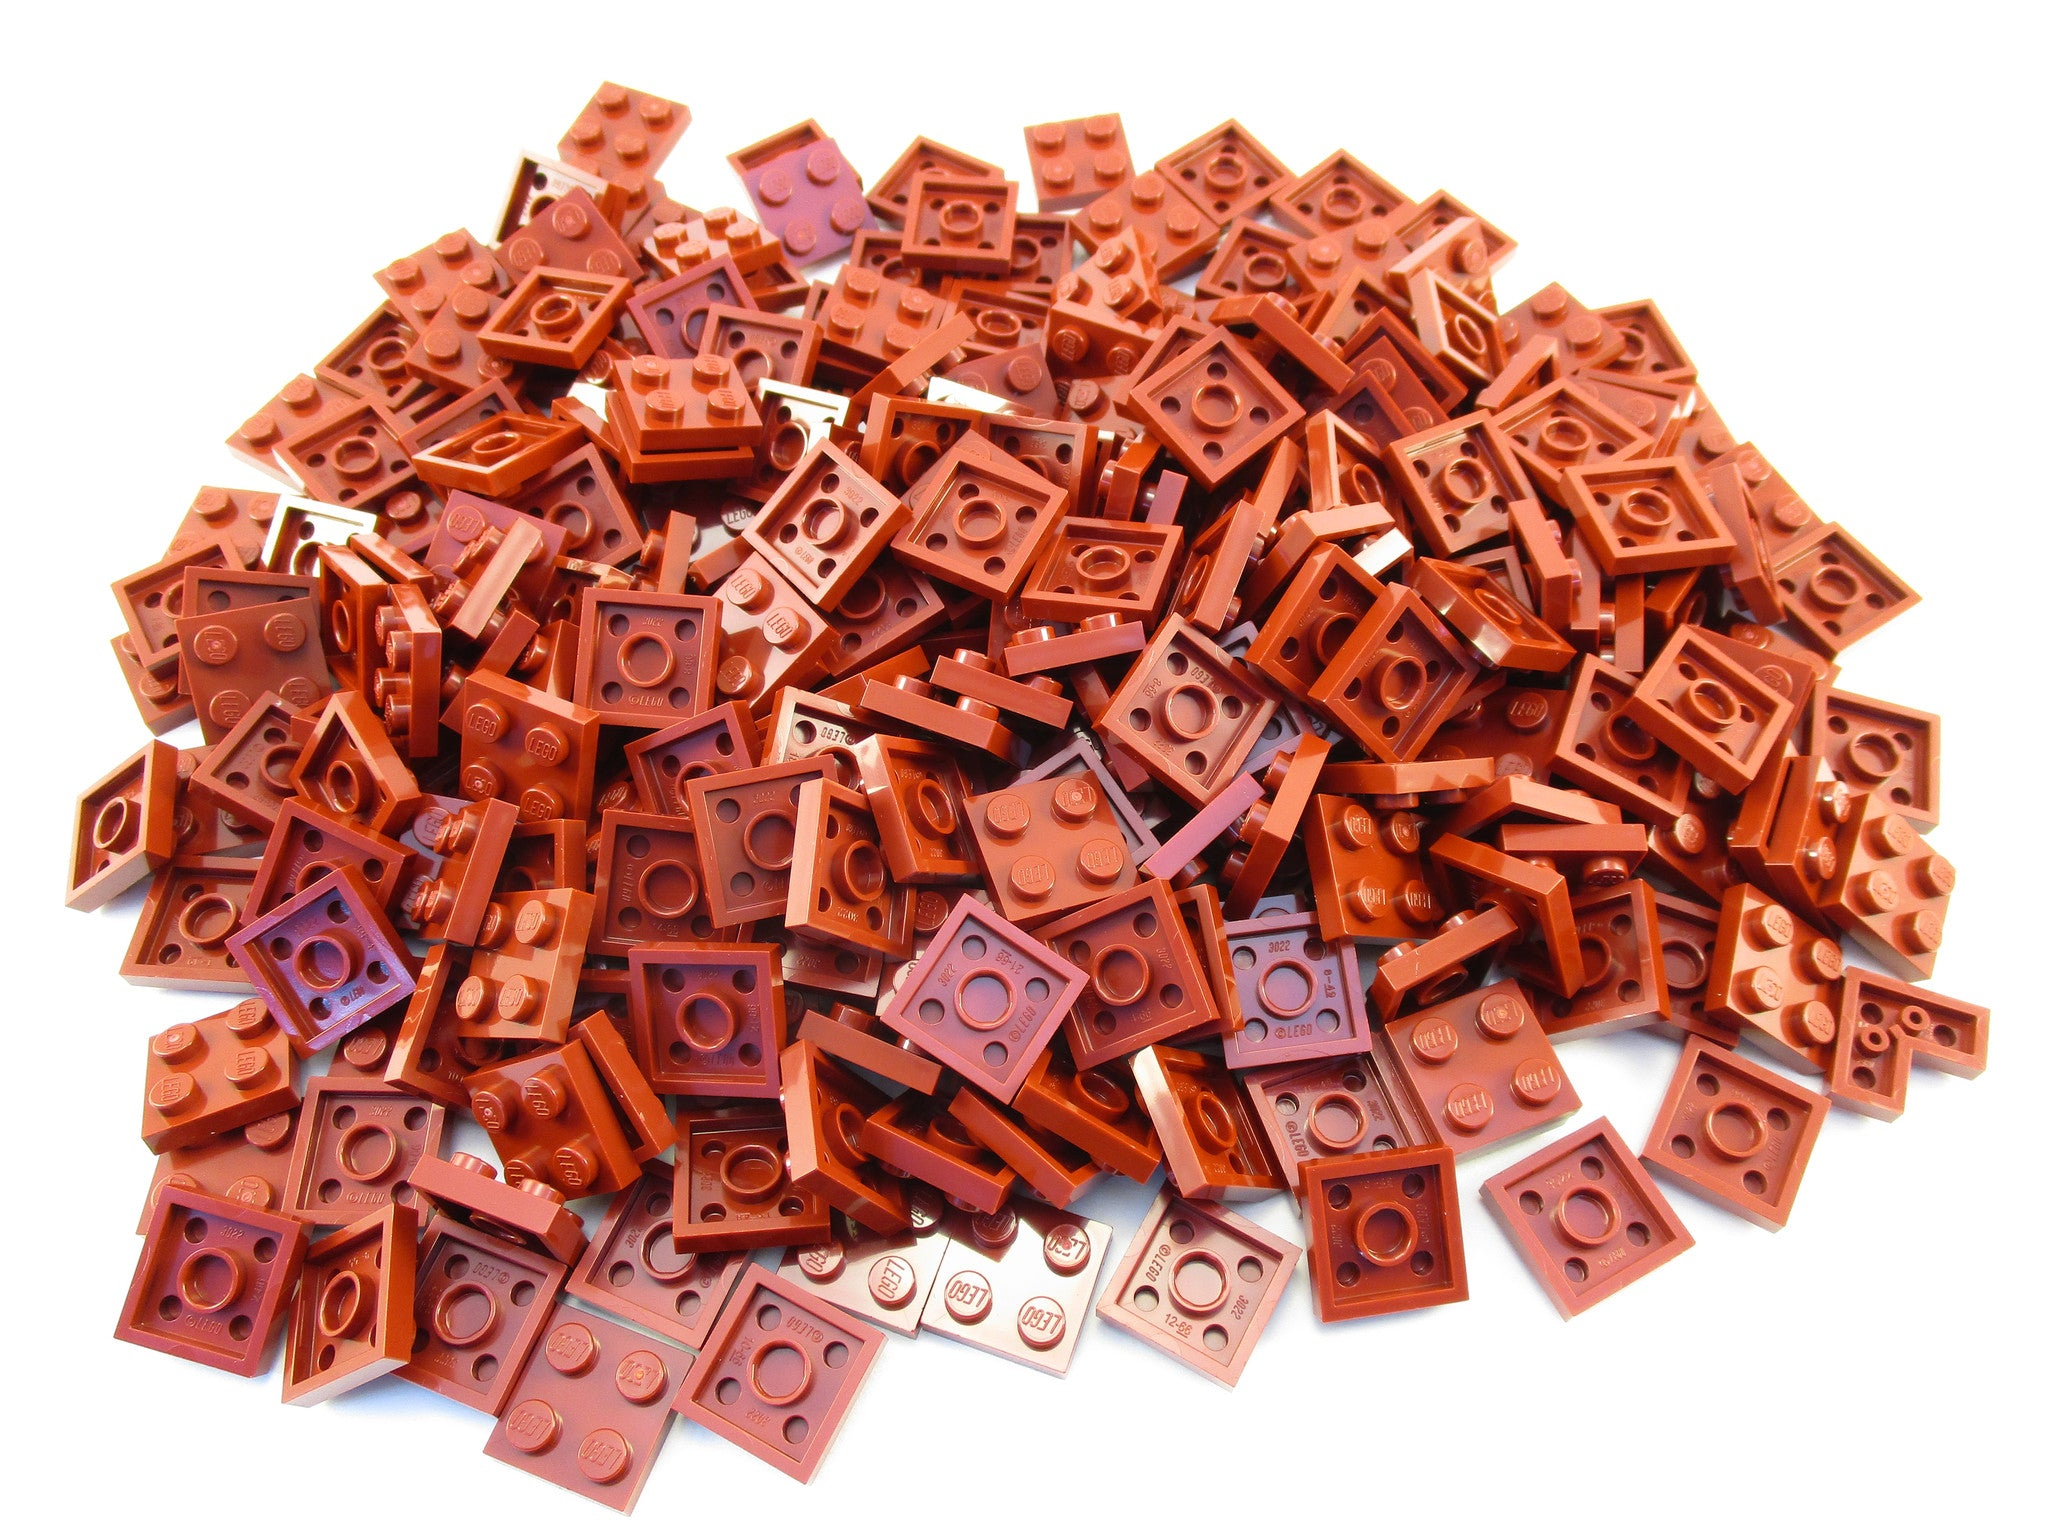 LEGO Dark Red Plate 2x2 Lot of 100 Parts Pieces 3022